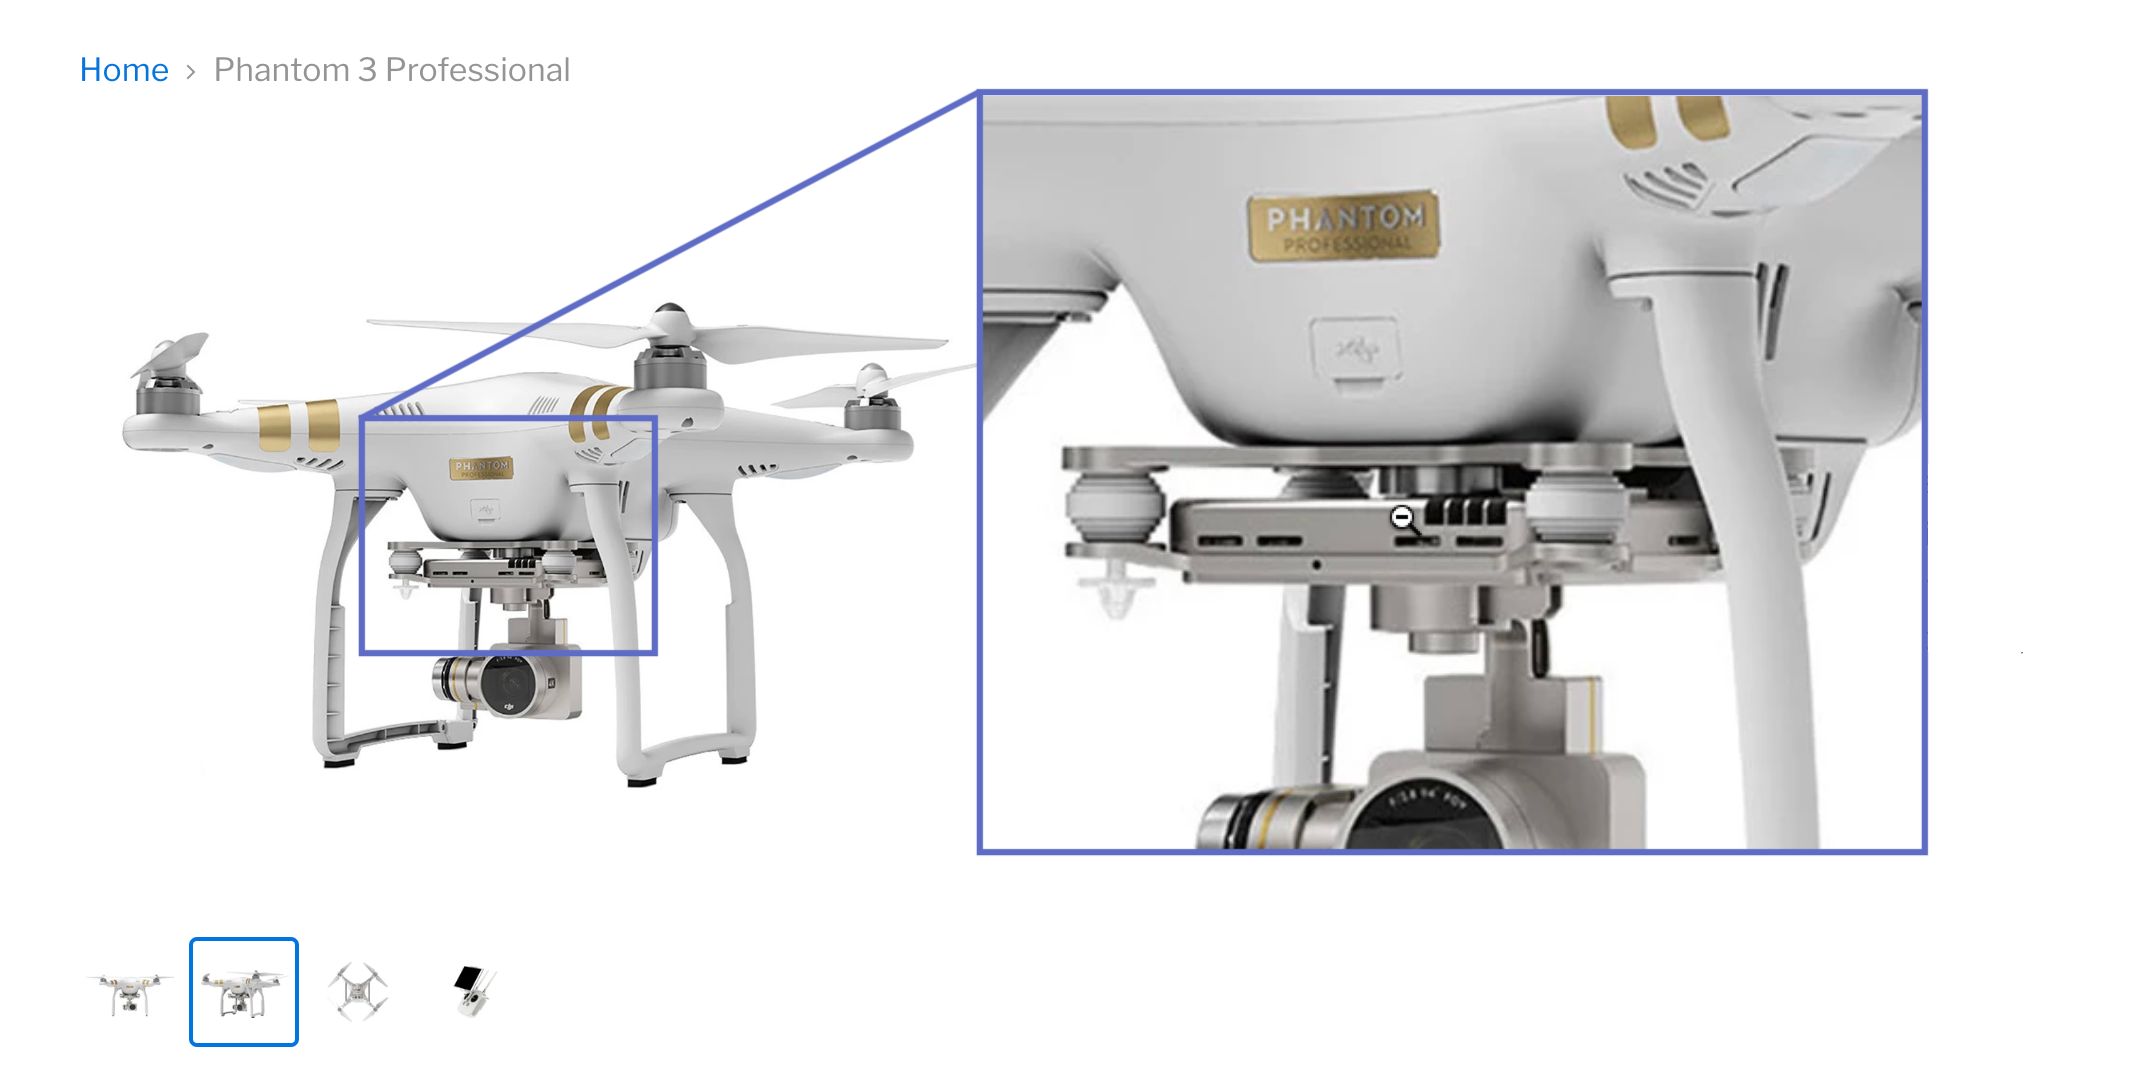 Zoom_in_Empire_Industrial_showing_drone_close-up.png